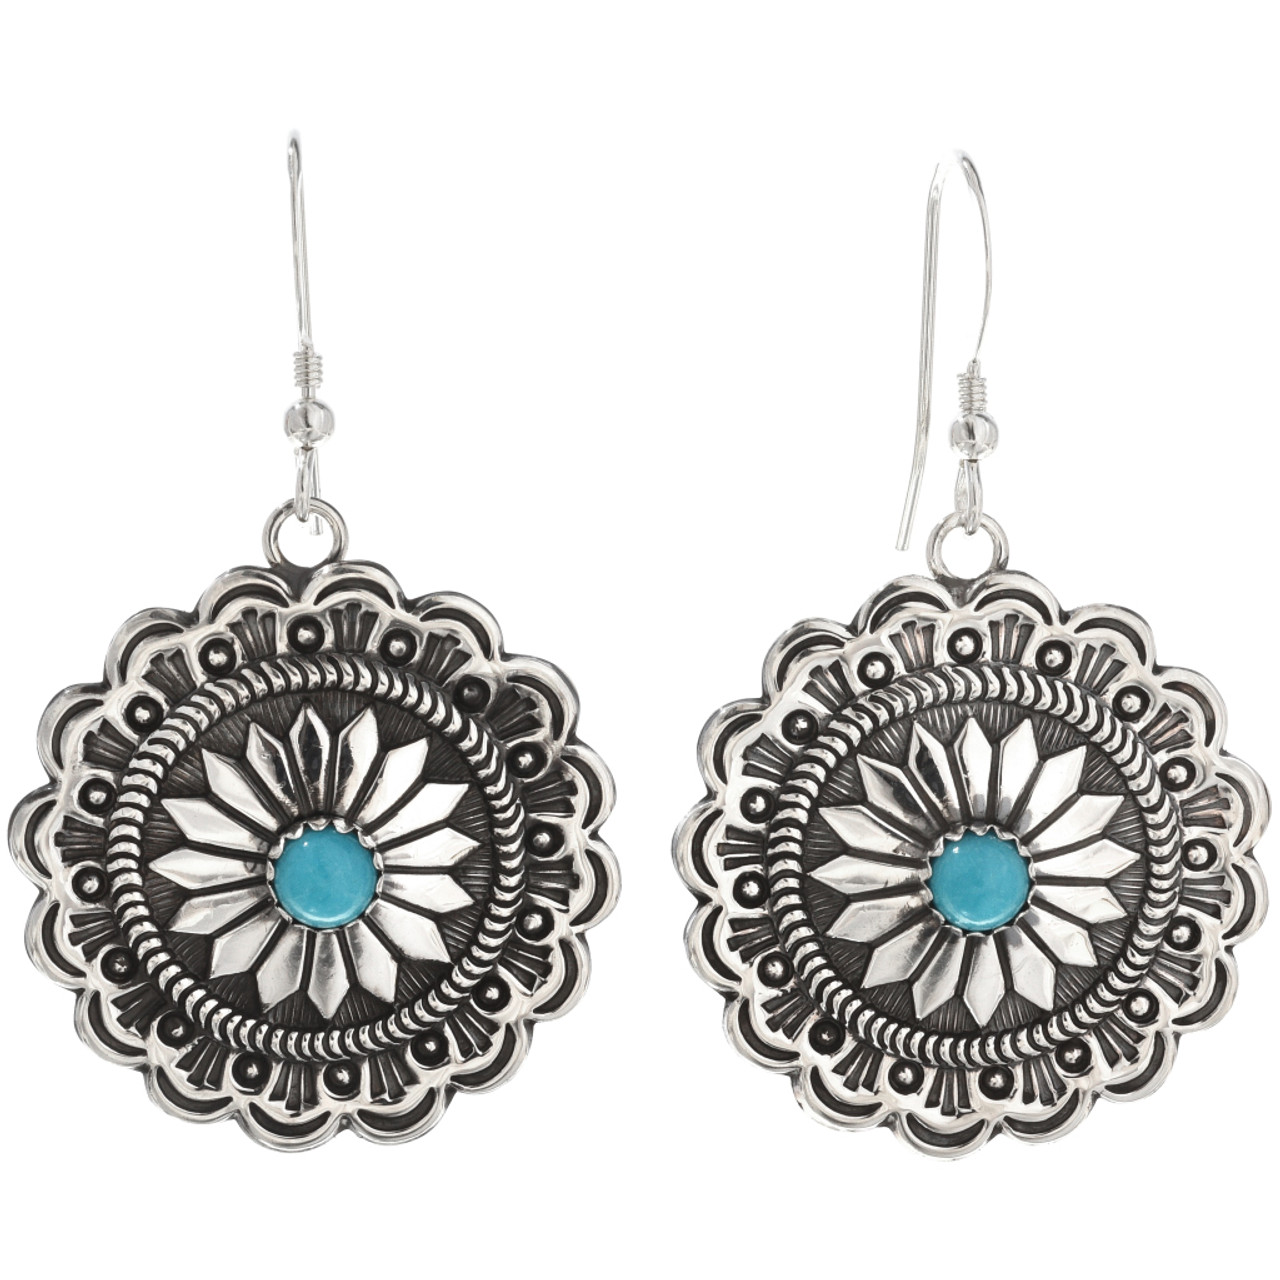 f50541d23 Navajo Turquoise Silver Concho Earrings 15788